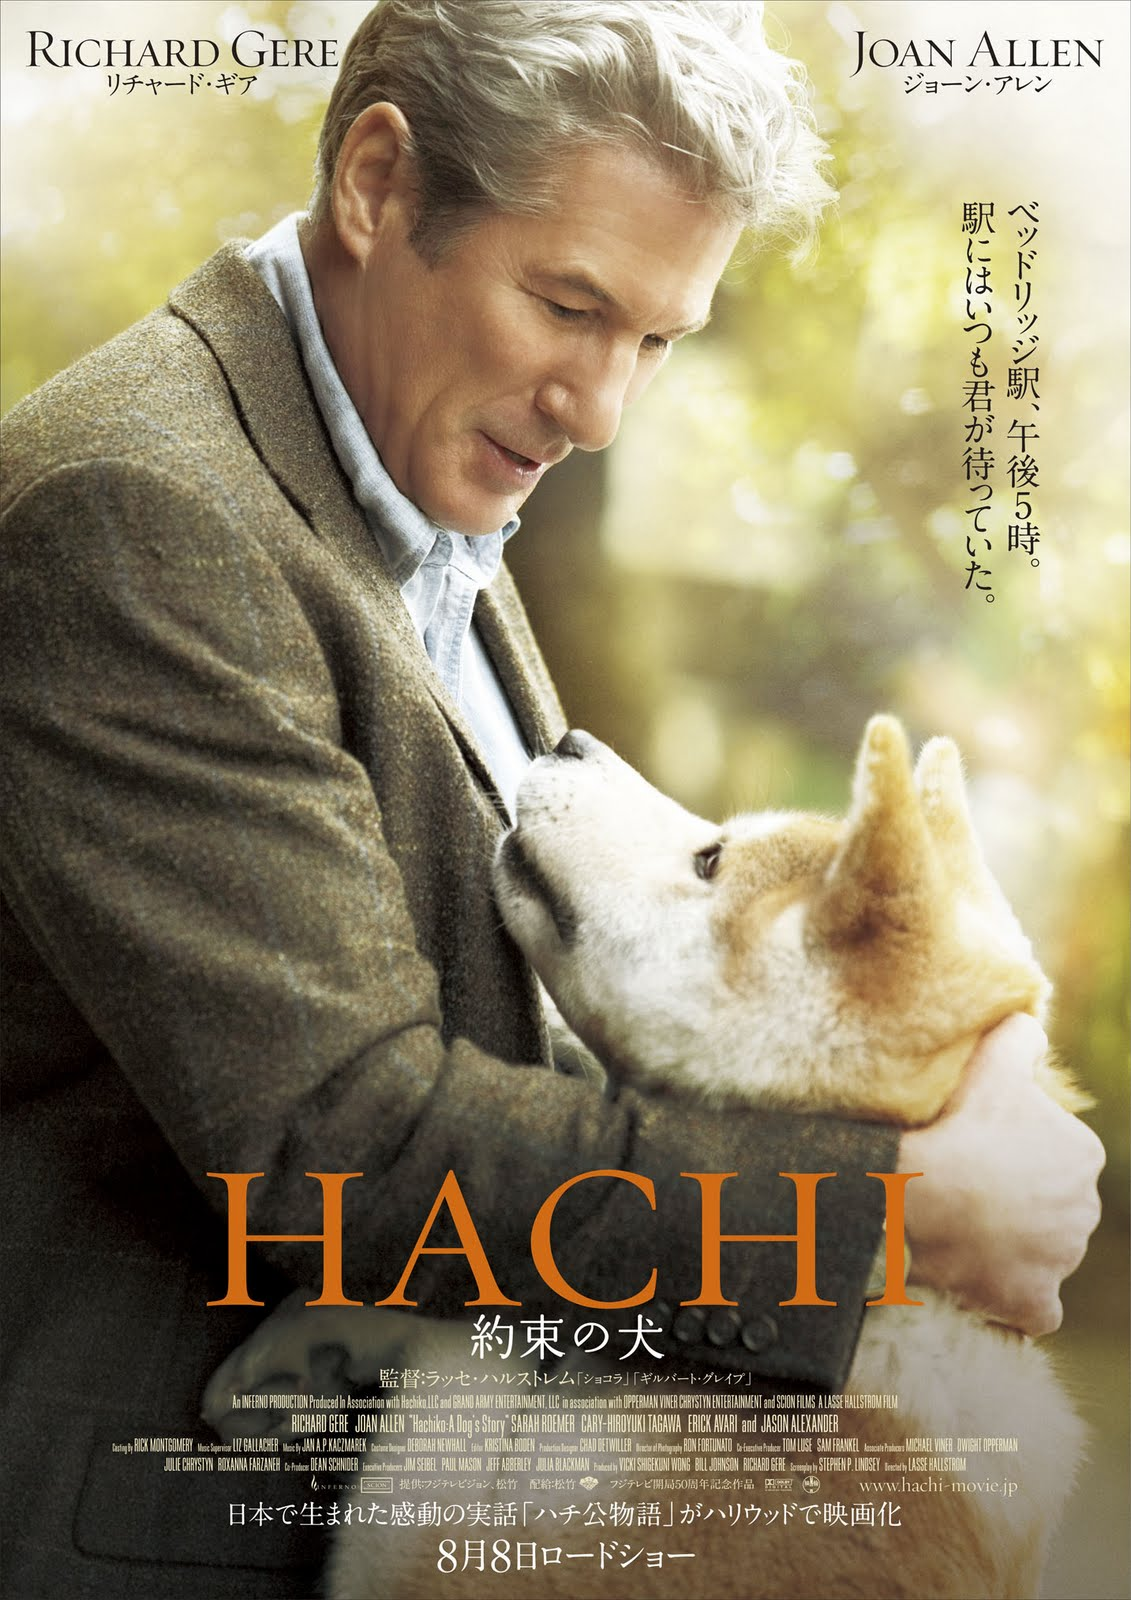 Sunshine on Sugar Hill: Movie: Hachiko, A Dog's Tale